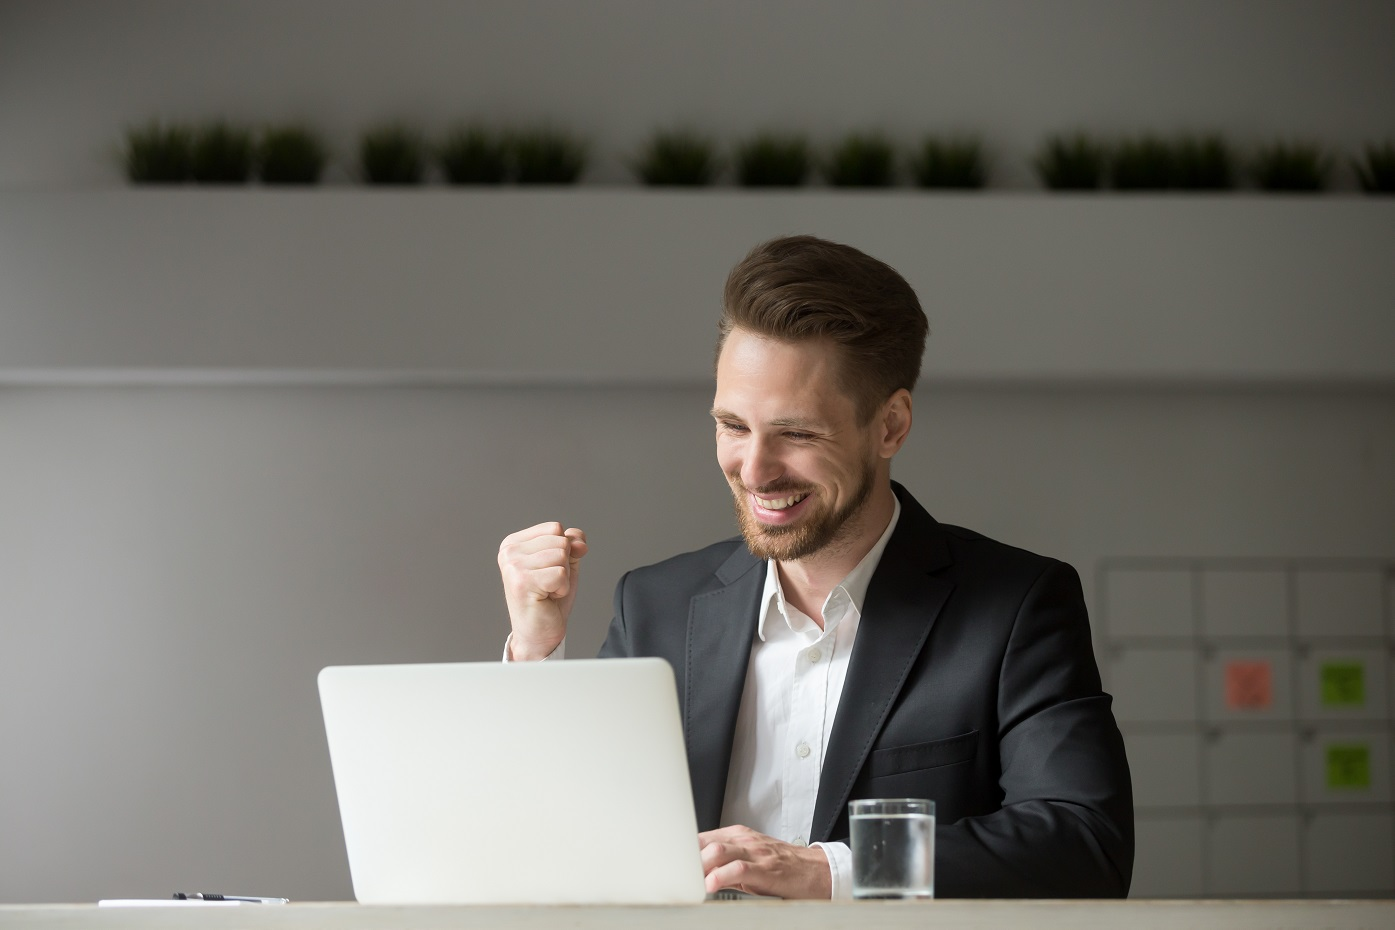 Person sitting at a laptop smiling and clenching his fist